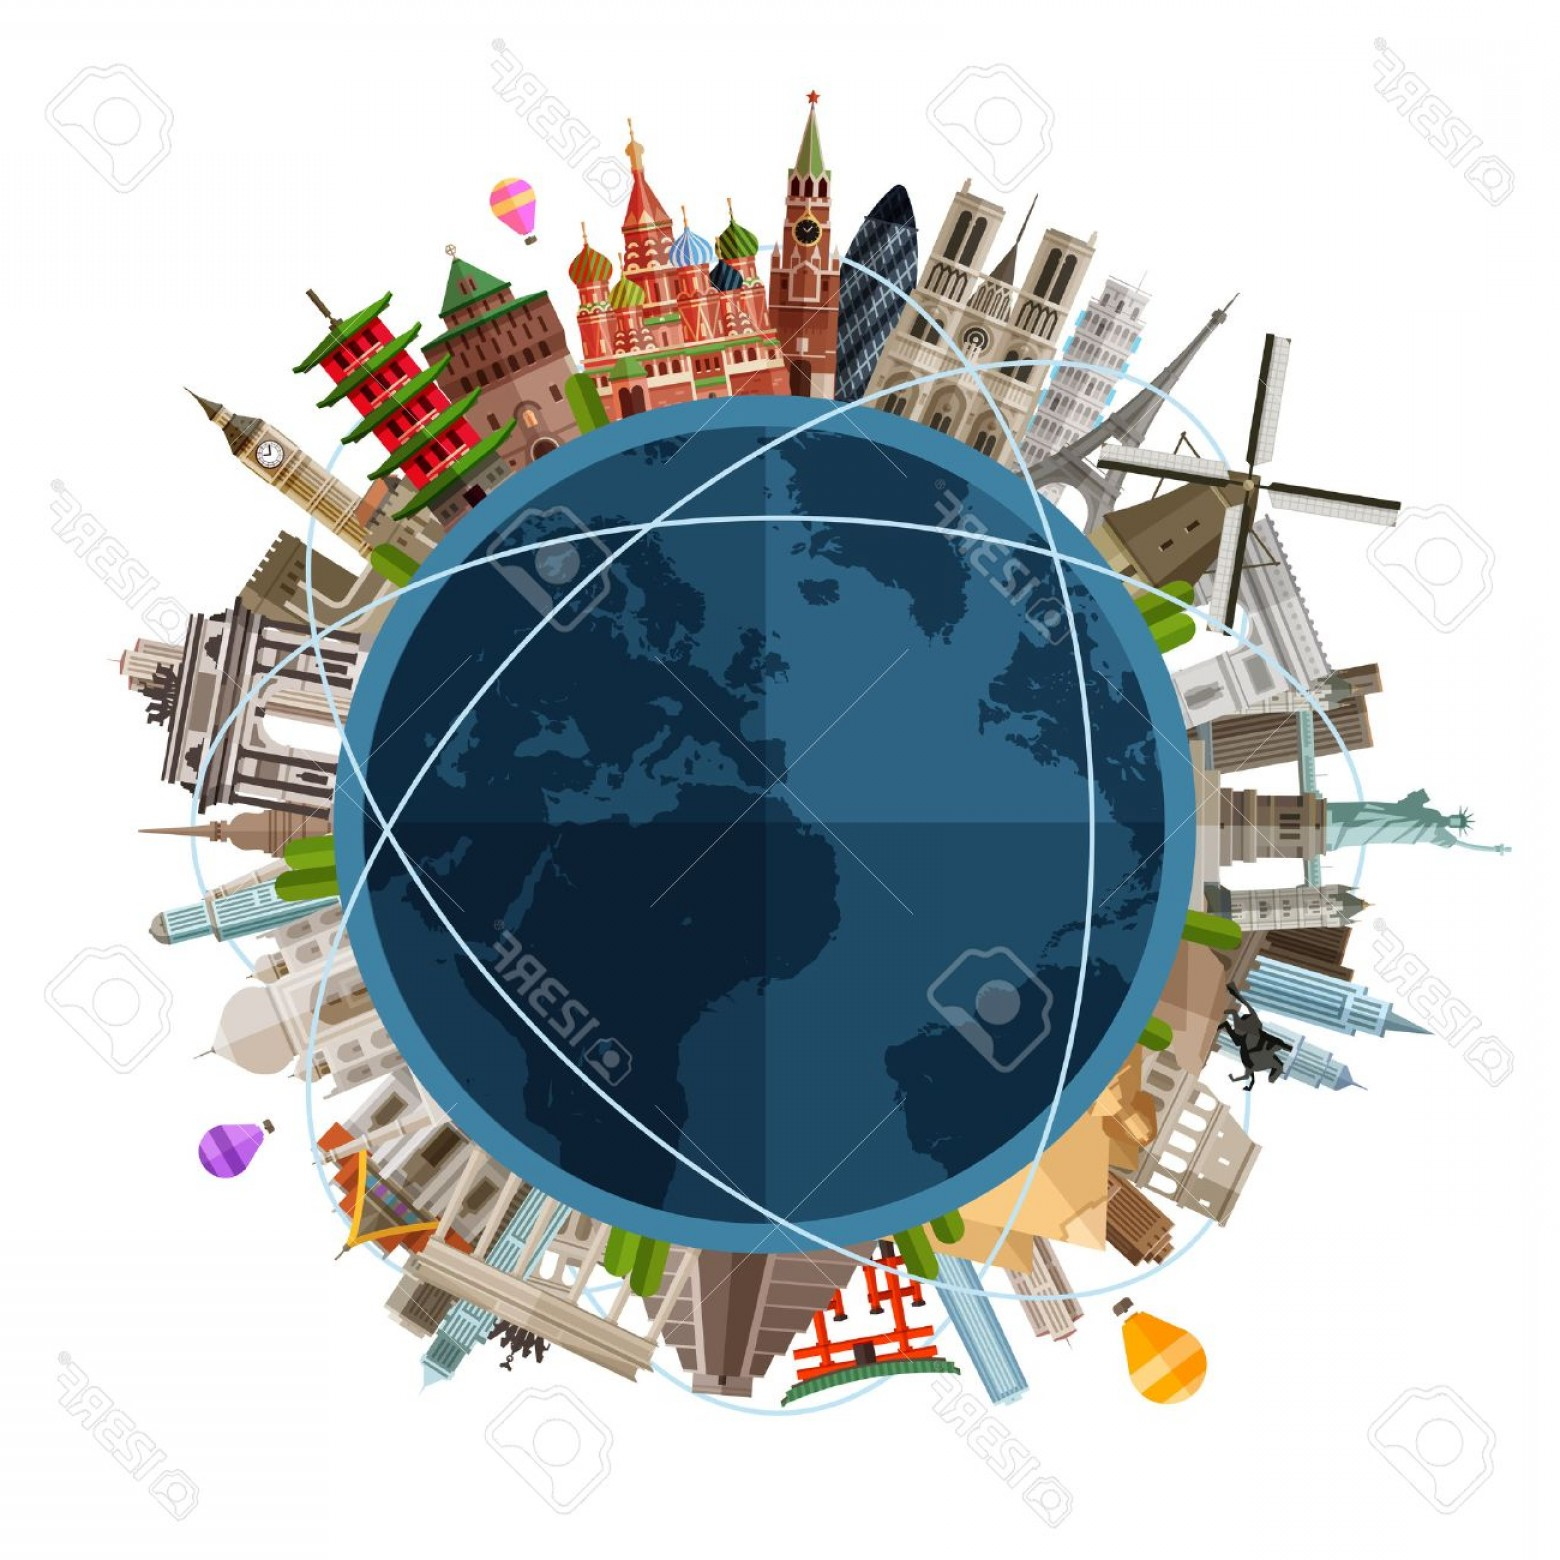 Vector Globe Countries: Photostock Vector Historic Architecture Of The Countries On The Globe In A Circle Vector Flat Illustration